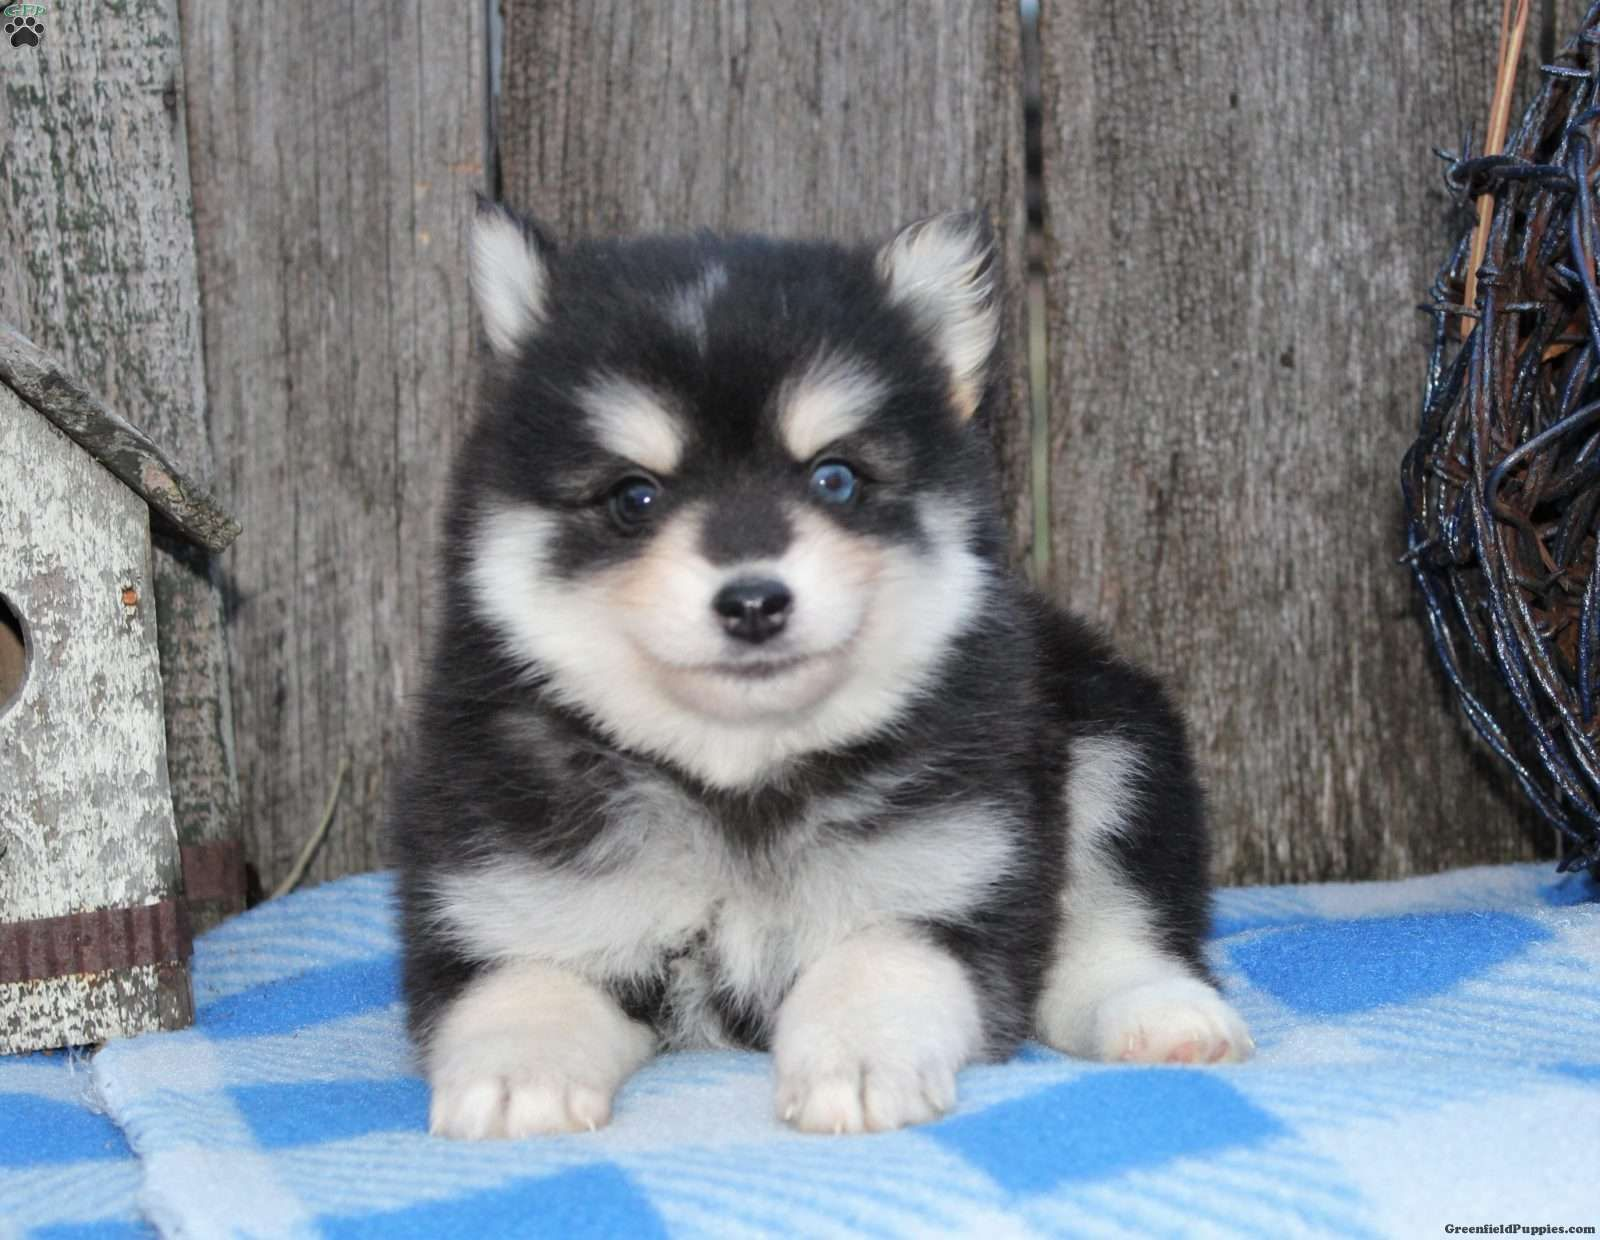 Leo Greenfield Puppies In 2020 Pomsky Puppies Greenfield Puppies Pomsky Puppies For Sale